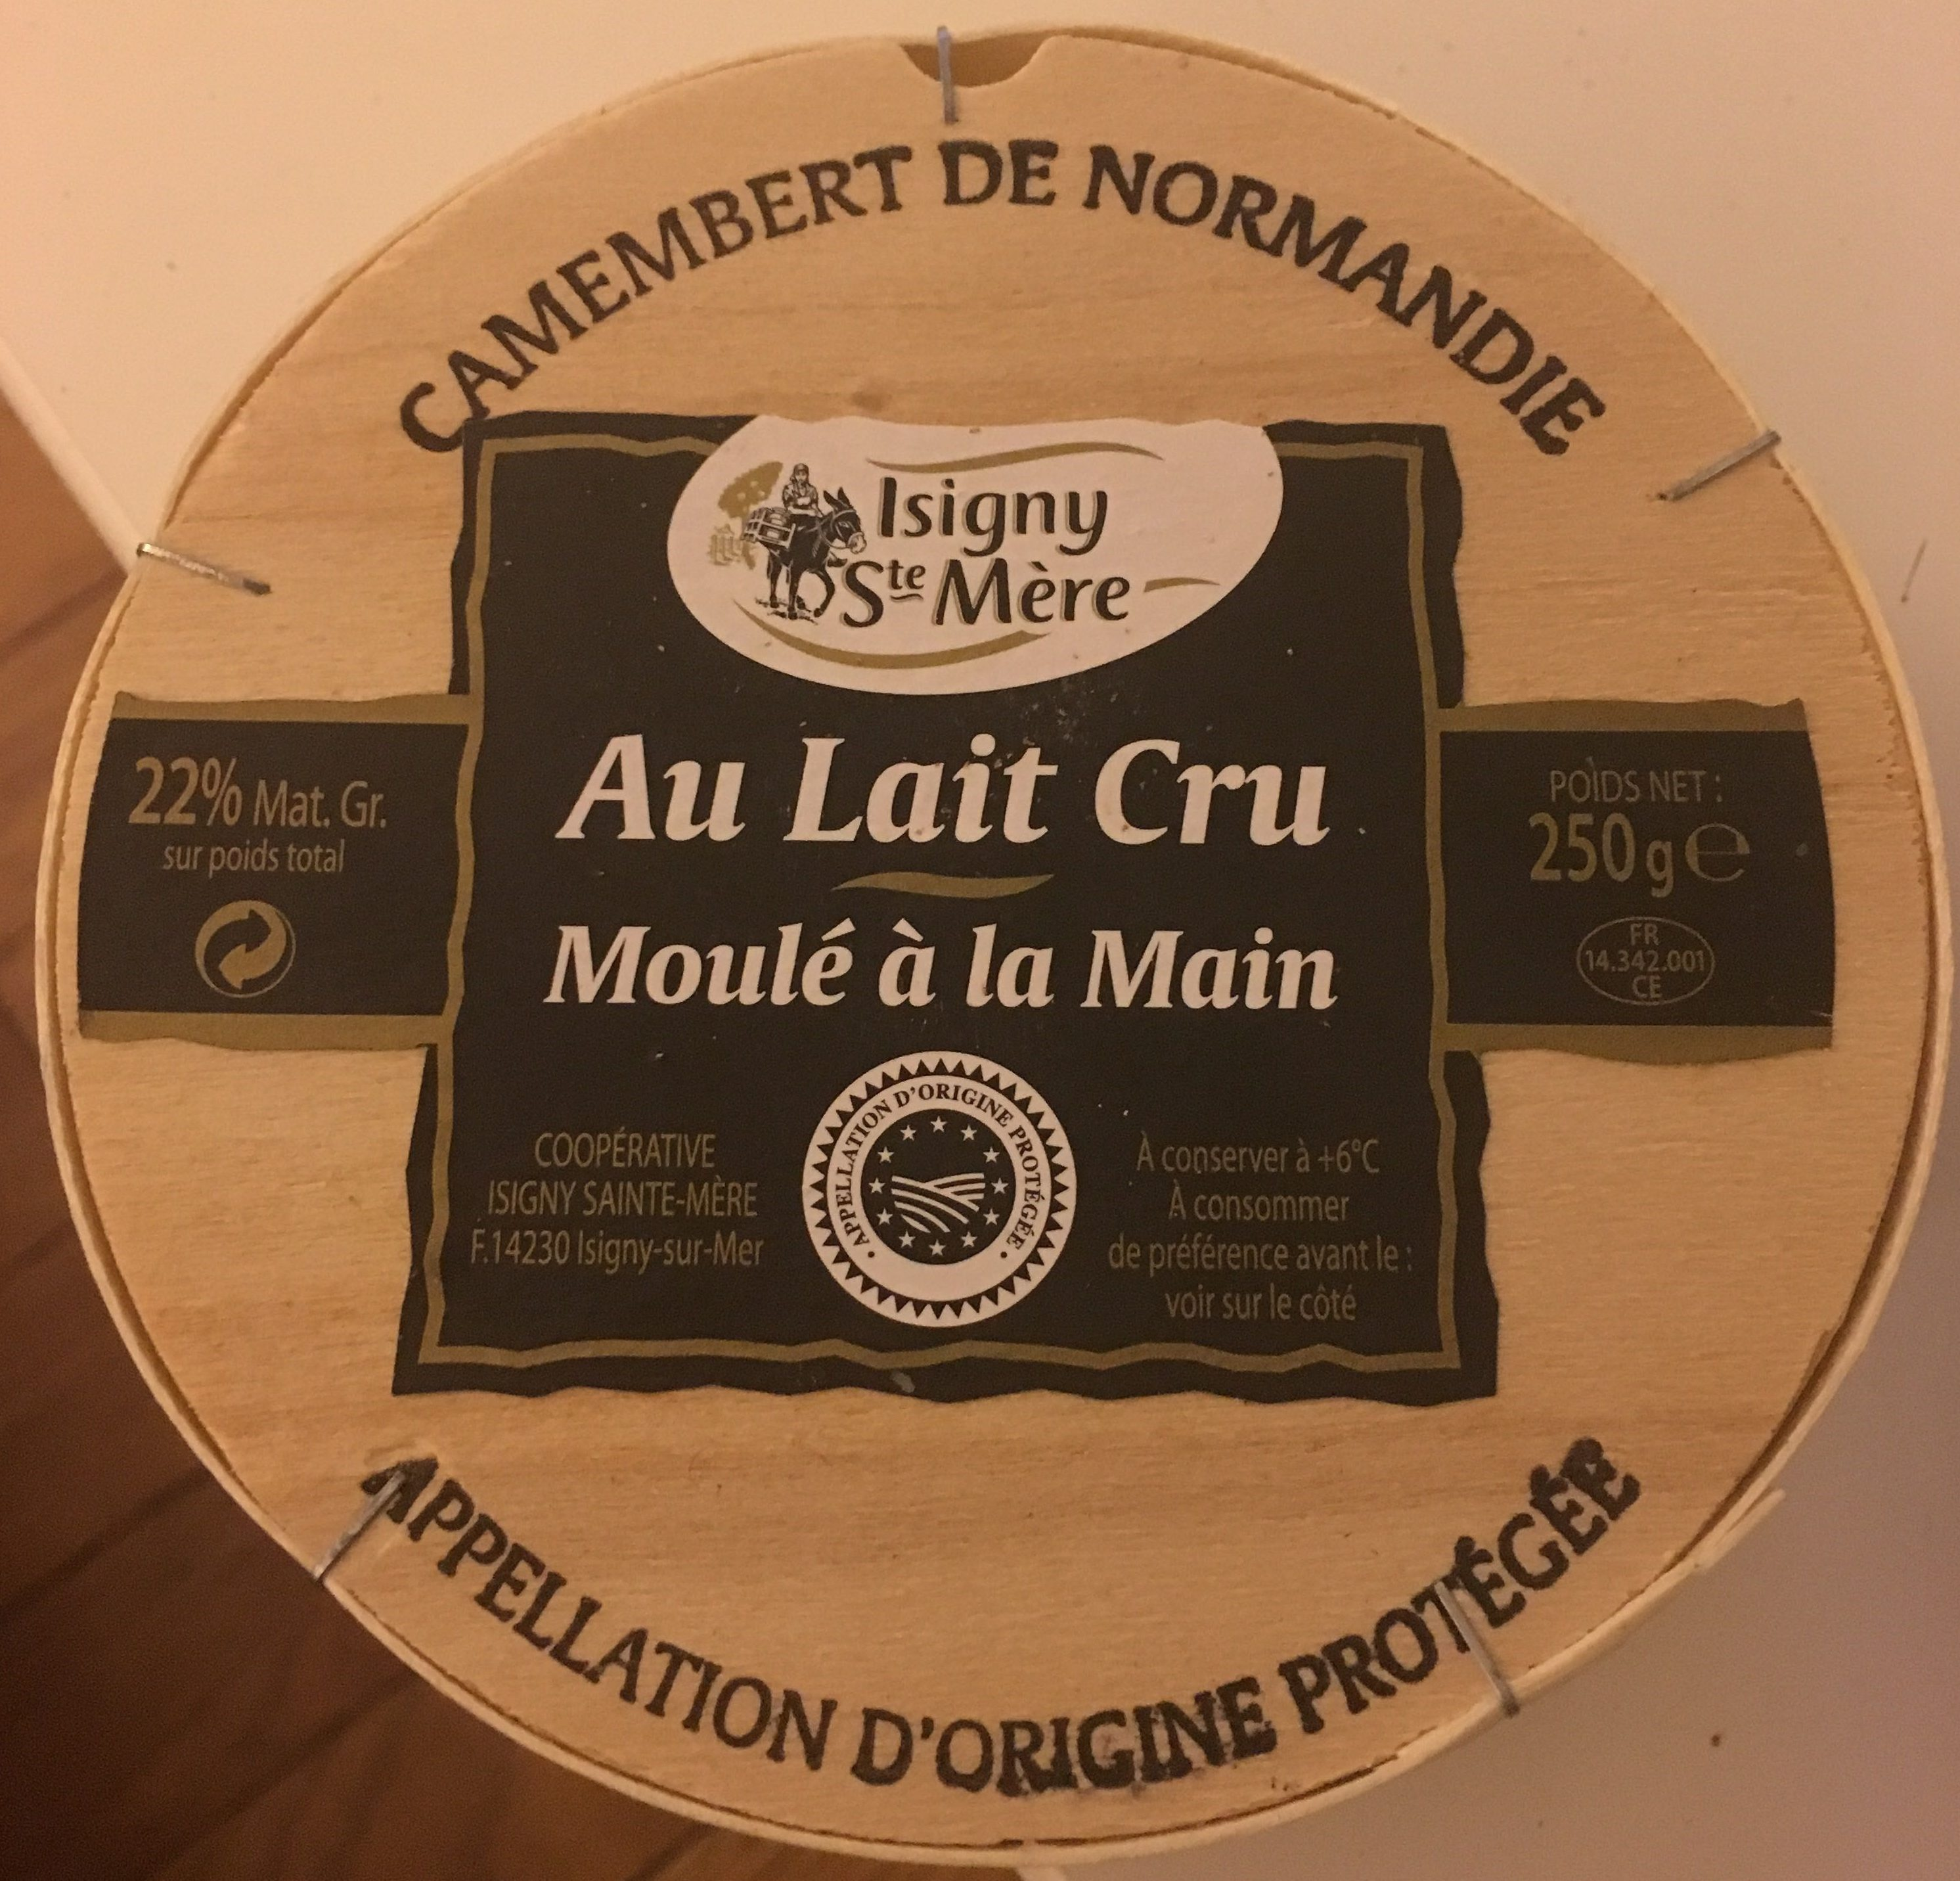 Camembert de Normandie (22% MG) - Product